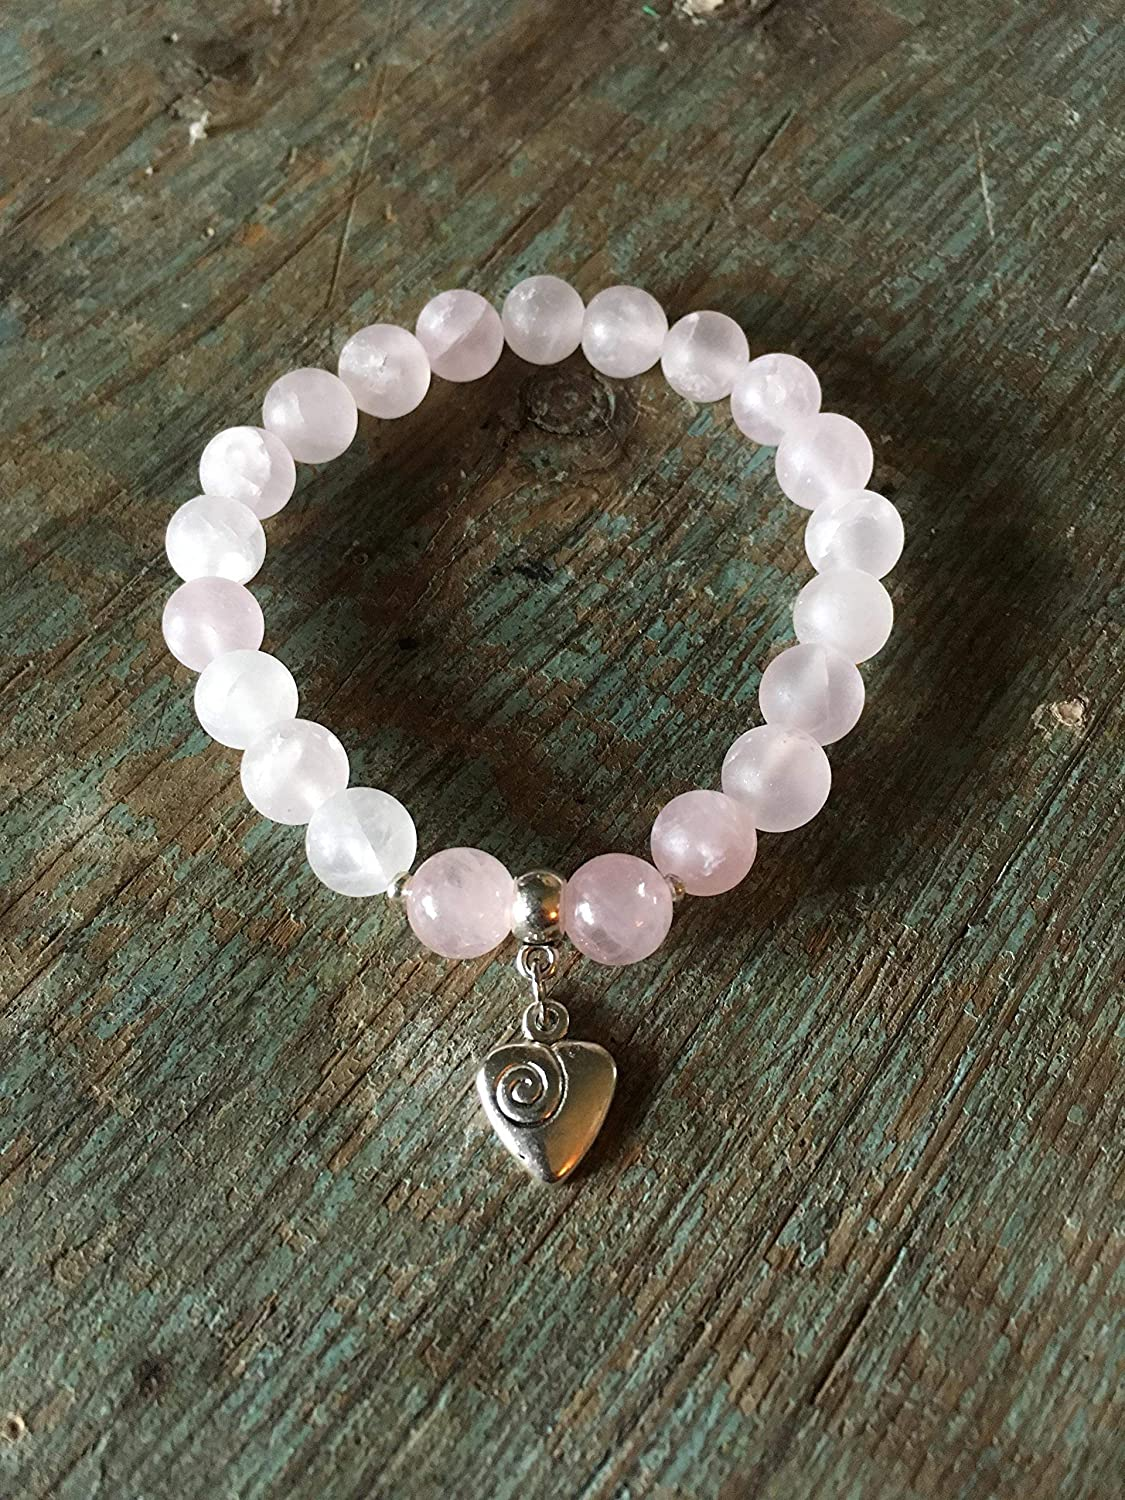 Compassion Inner Peace and Reiki Charged 8mm Beads Rose Quartz Bracelet with Heart Charm for Love